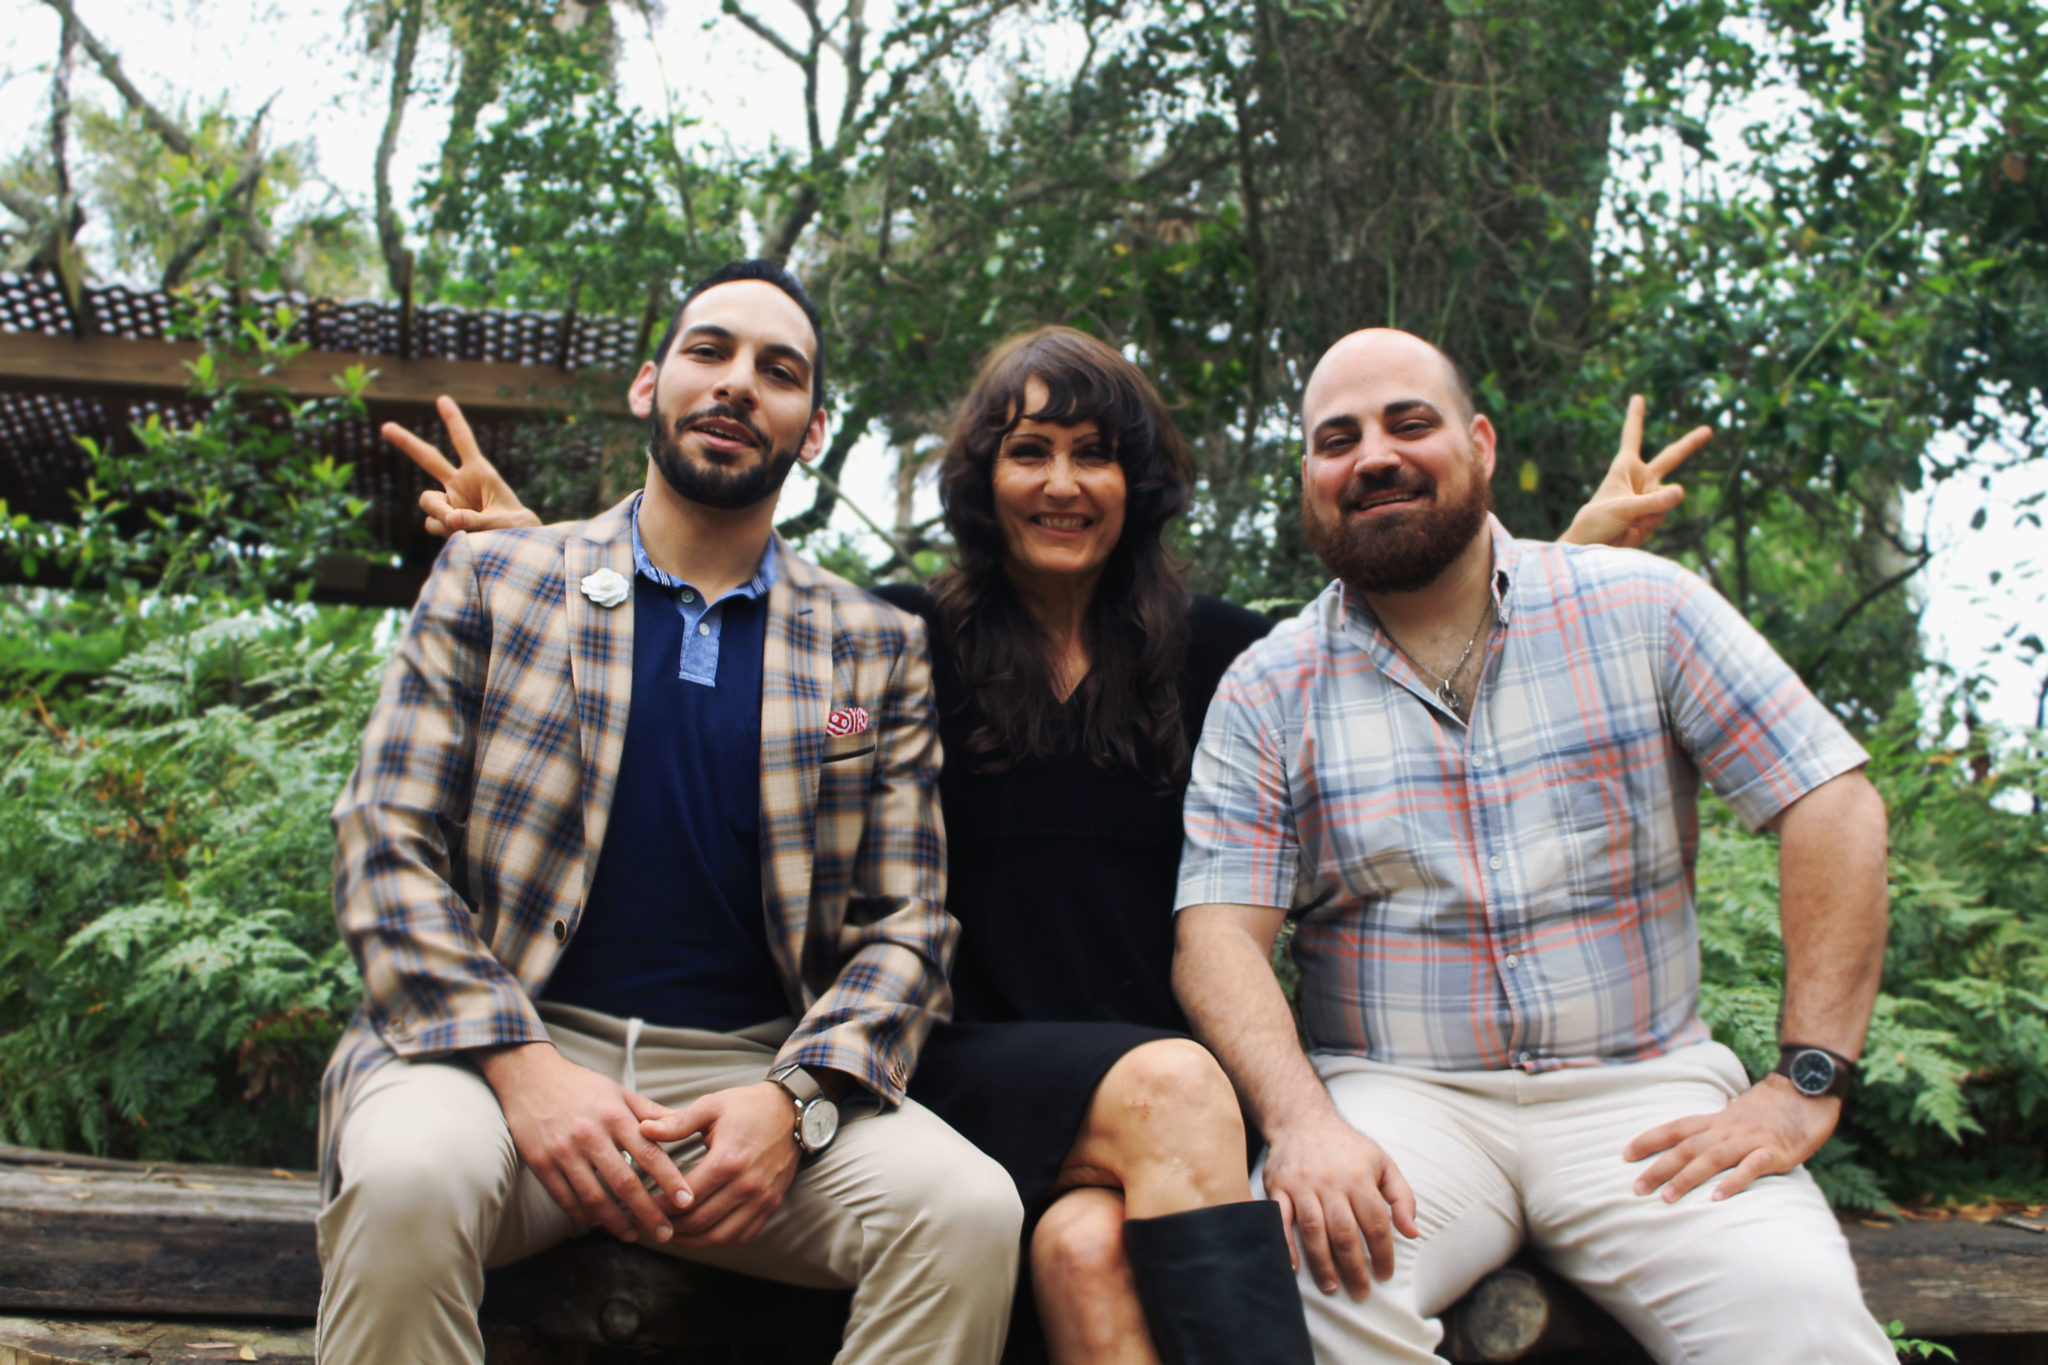 Omar Khateeb and his business partner Adam, the co-founders of P.S. Mister with Pam Hoelzle during a dear rockstar conversation